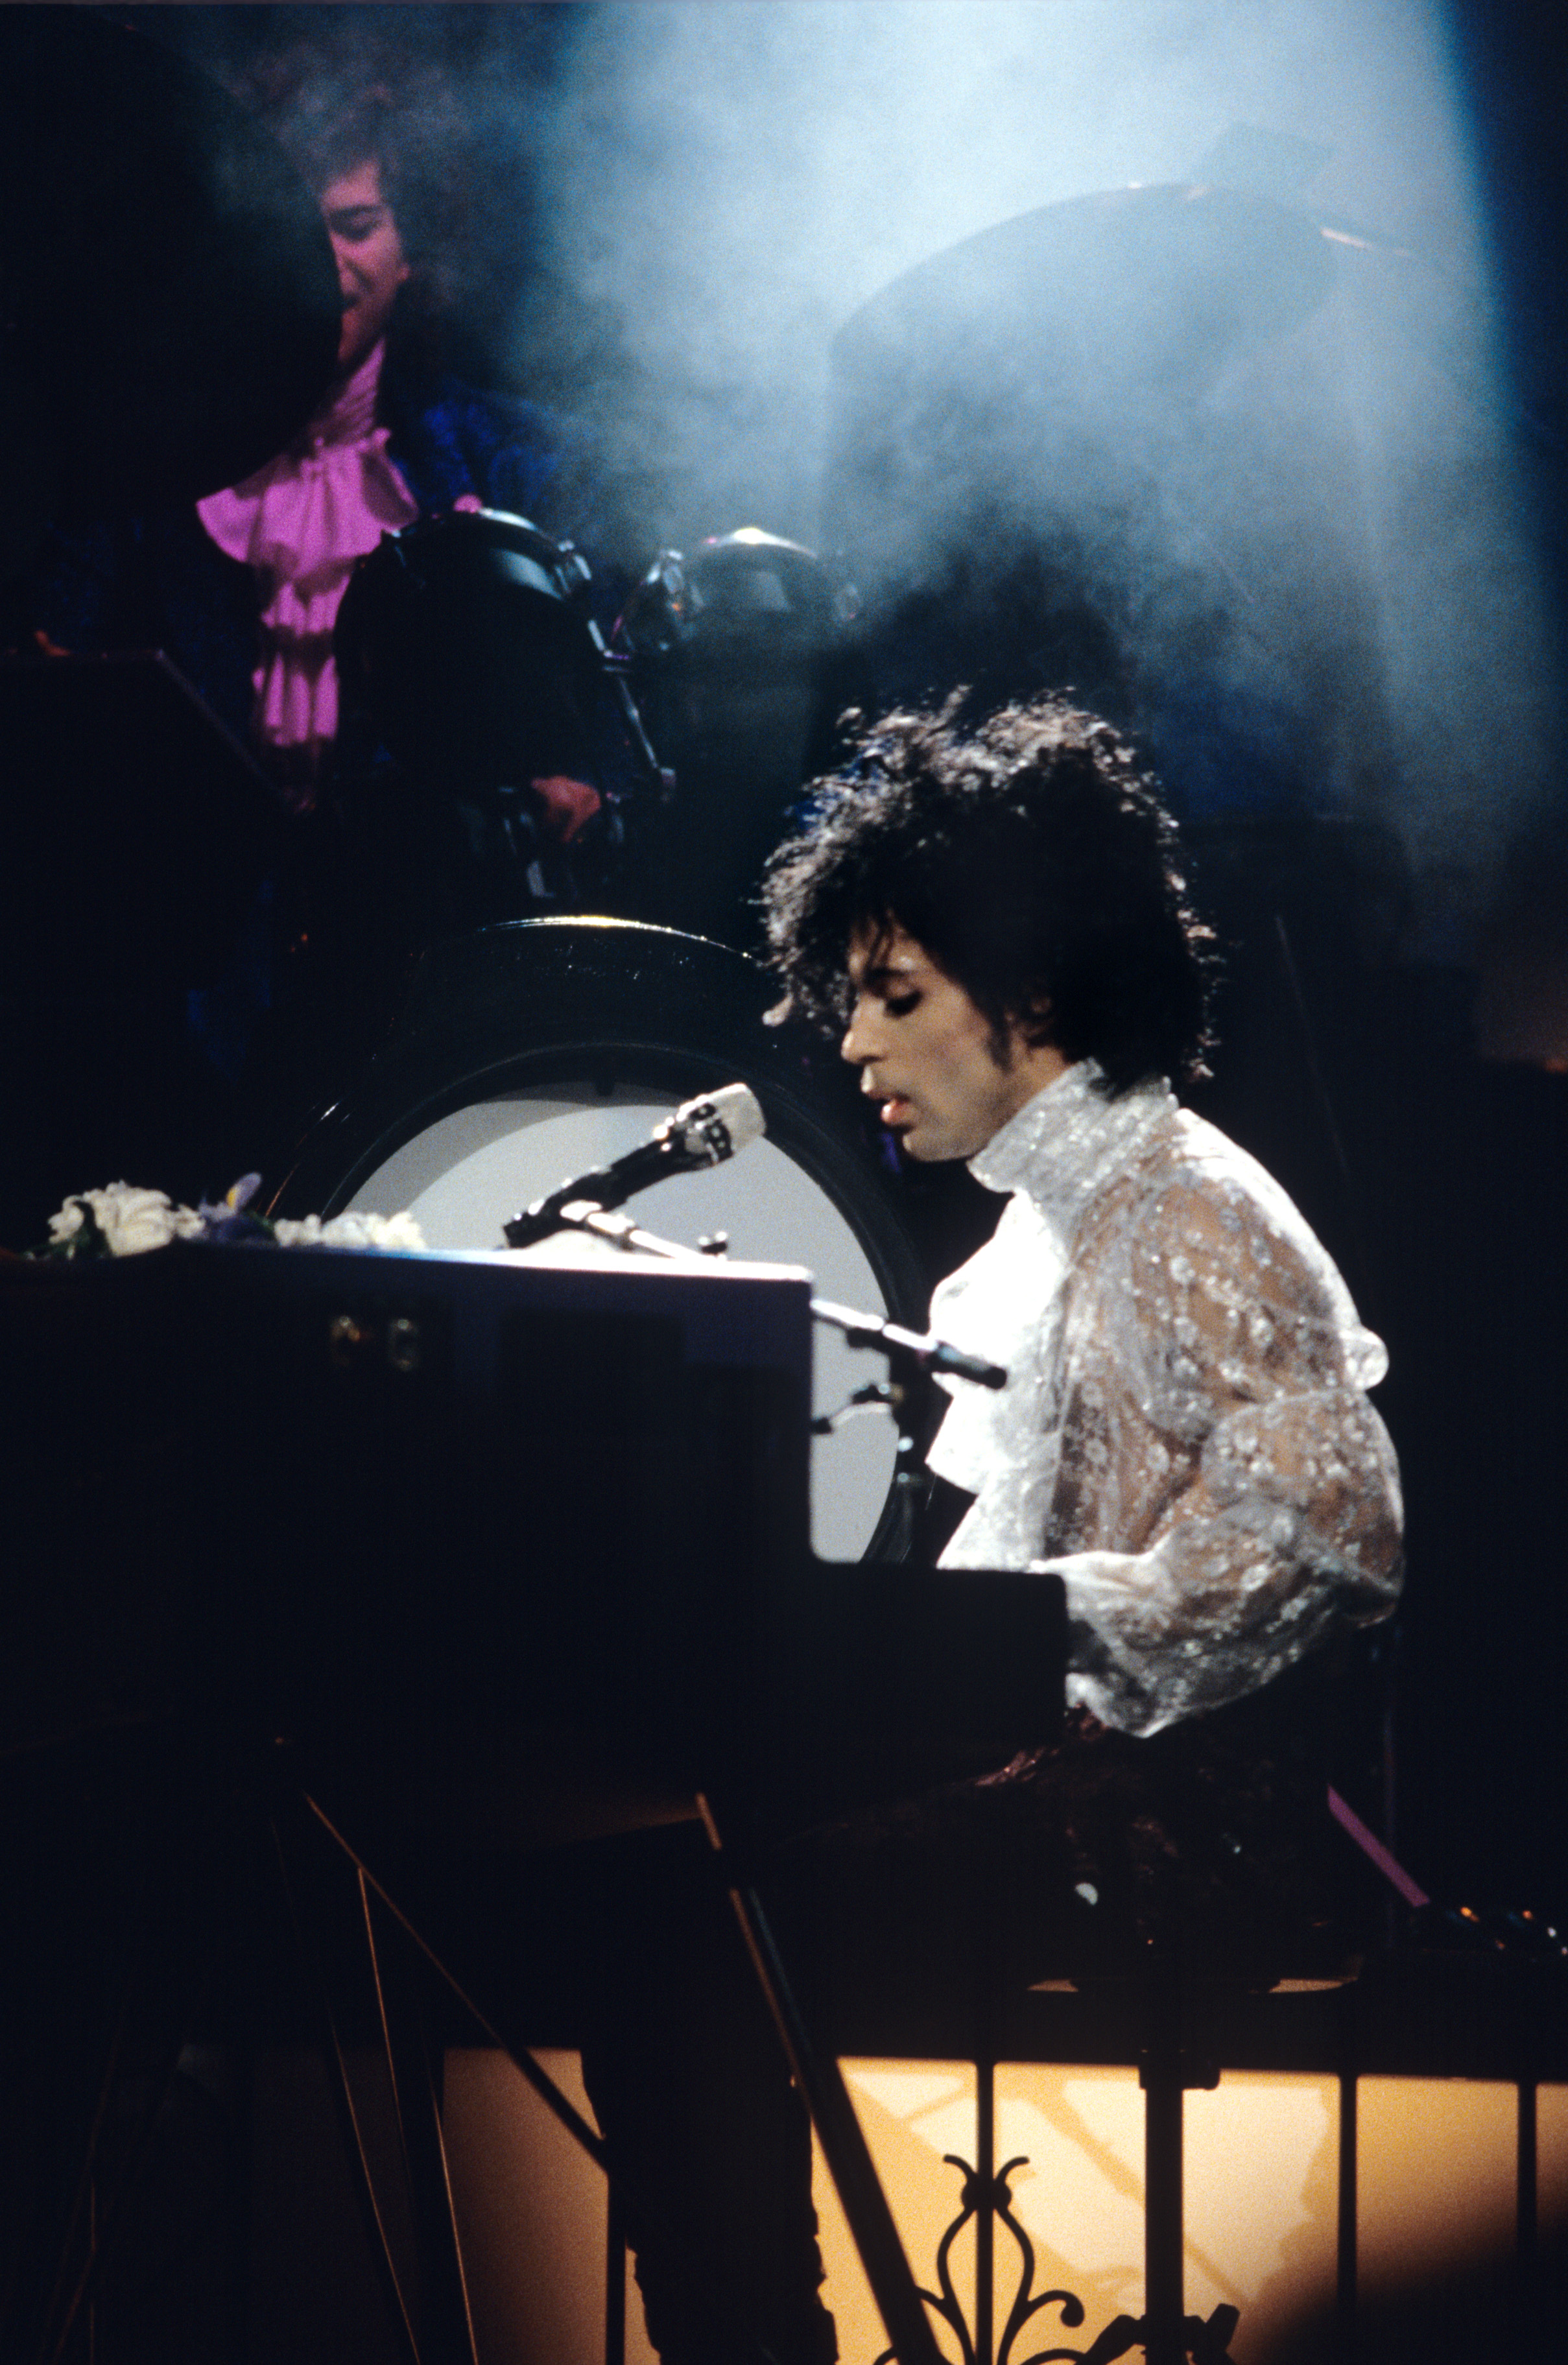 """Promoter Billy Sparks Reflects on Prince's """"Purple Rain"""" and Their Friendship"""